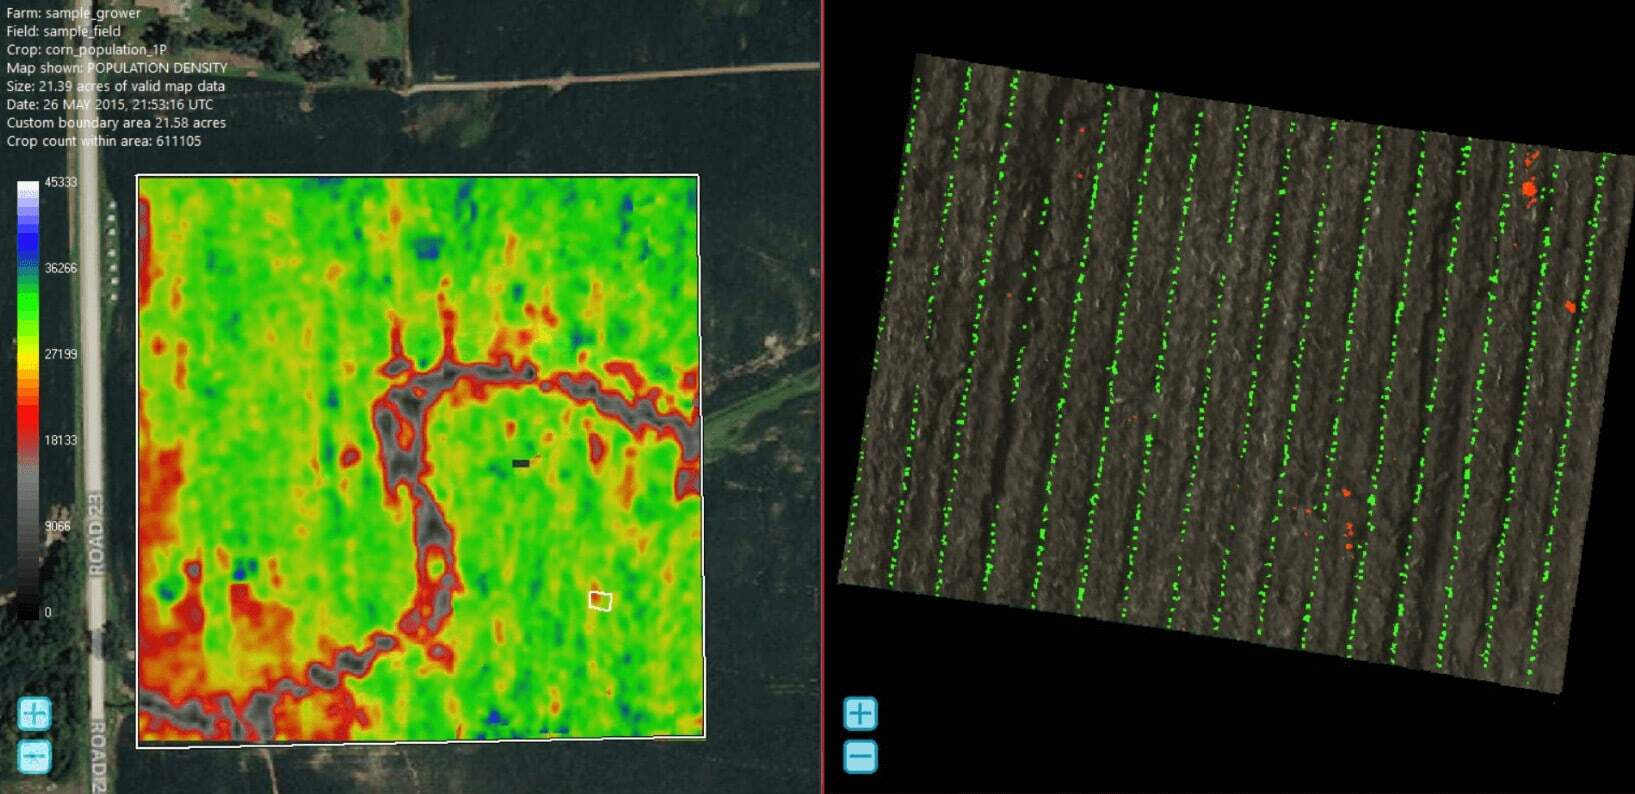 Multispectral plant population data